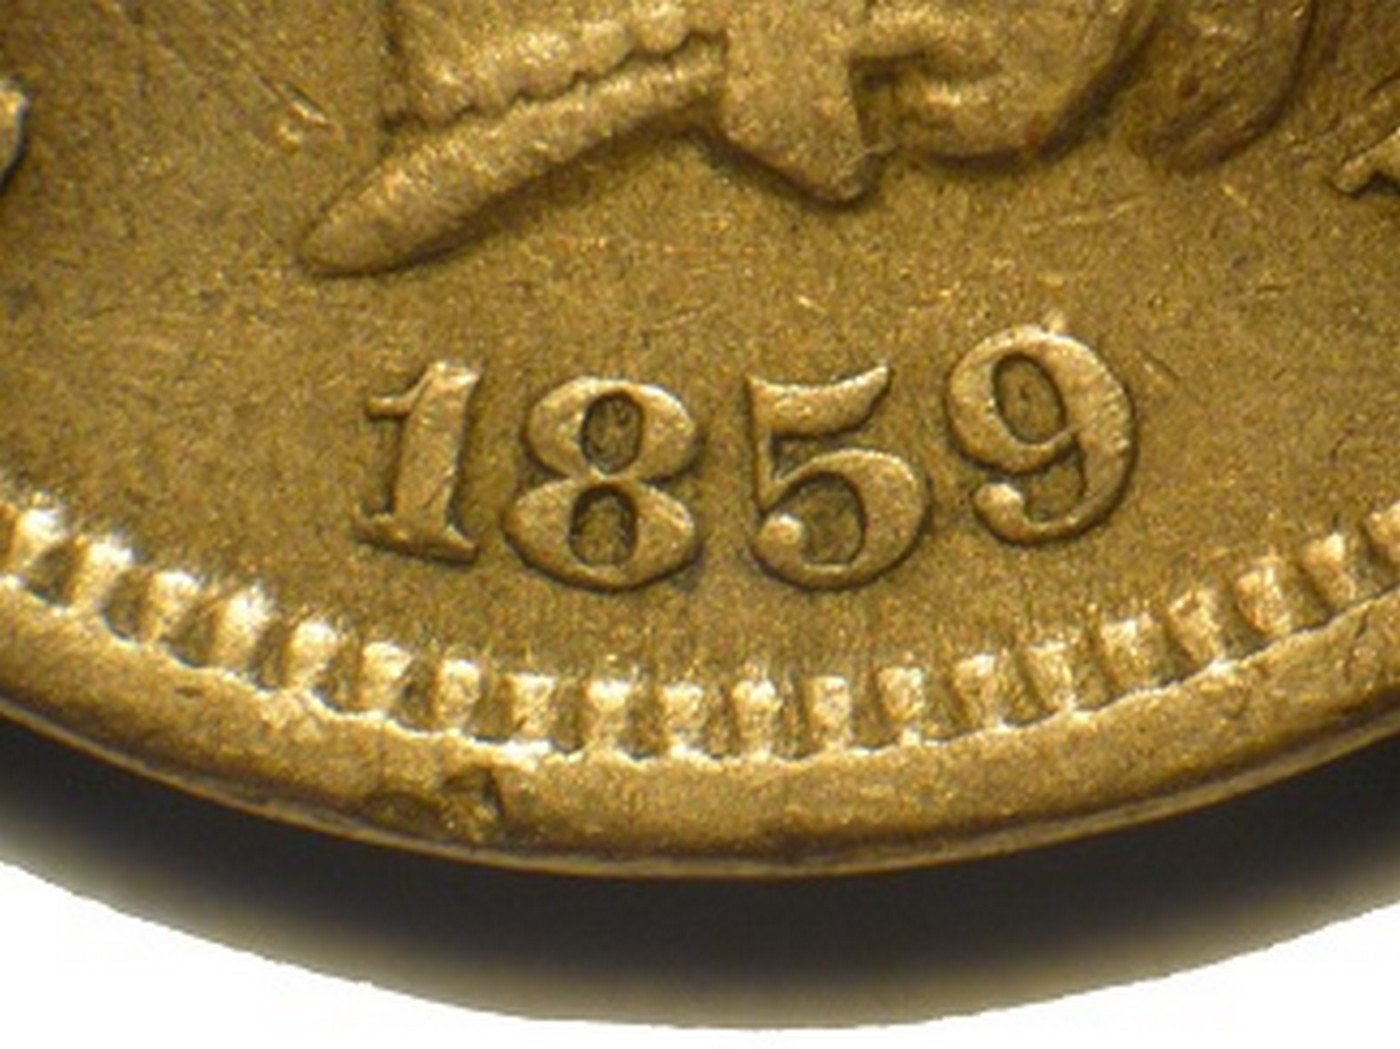 1859 Obverse of CRK-001 - Indian Head Cent - Photo by David Poliquin